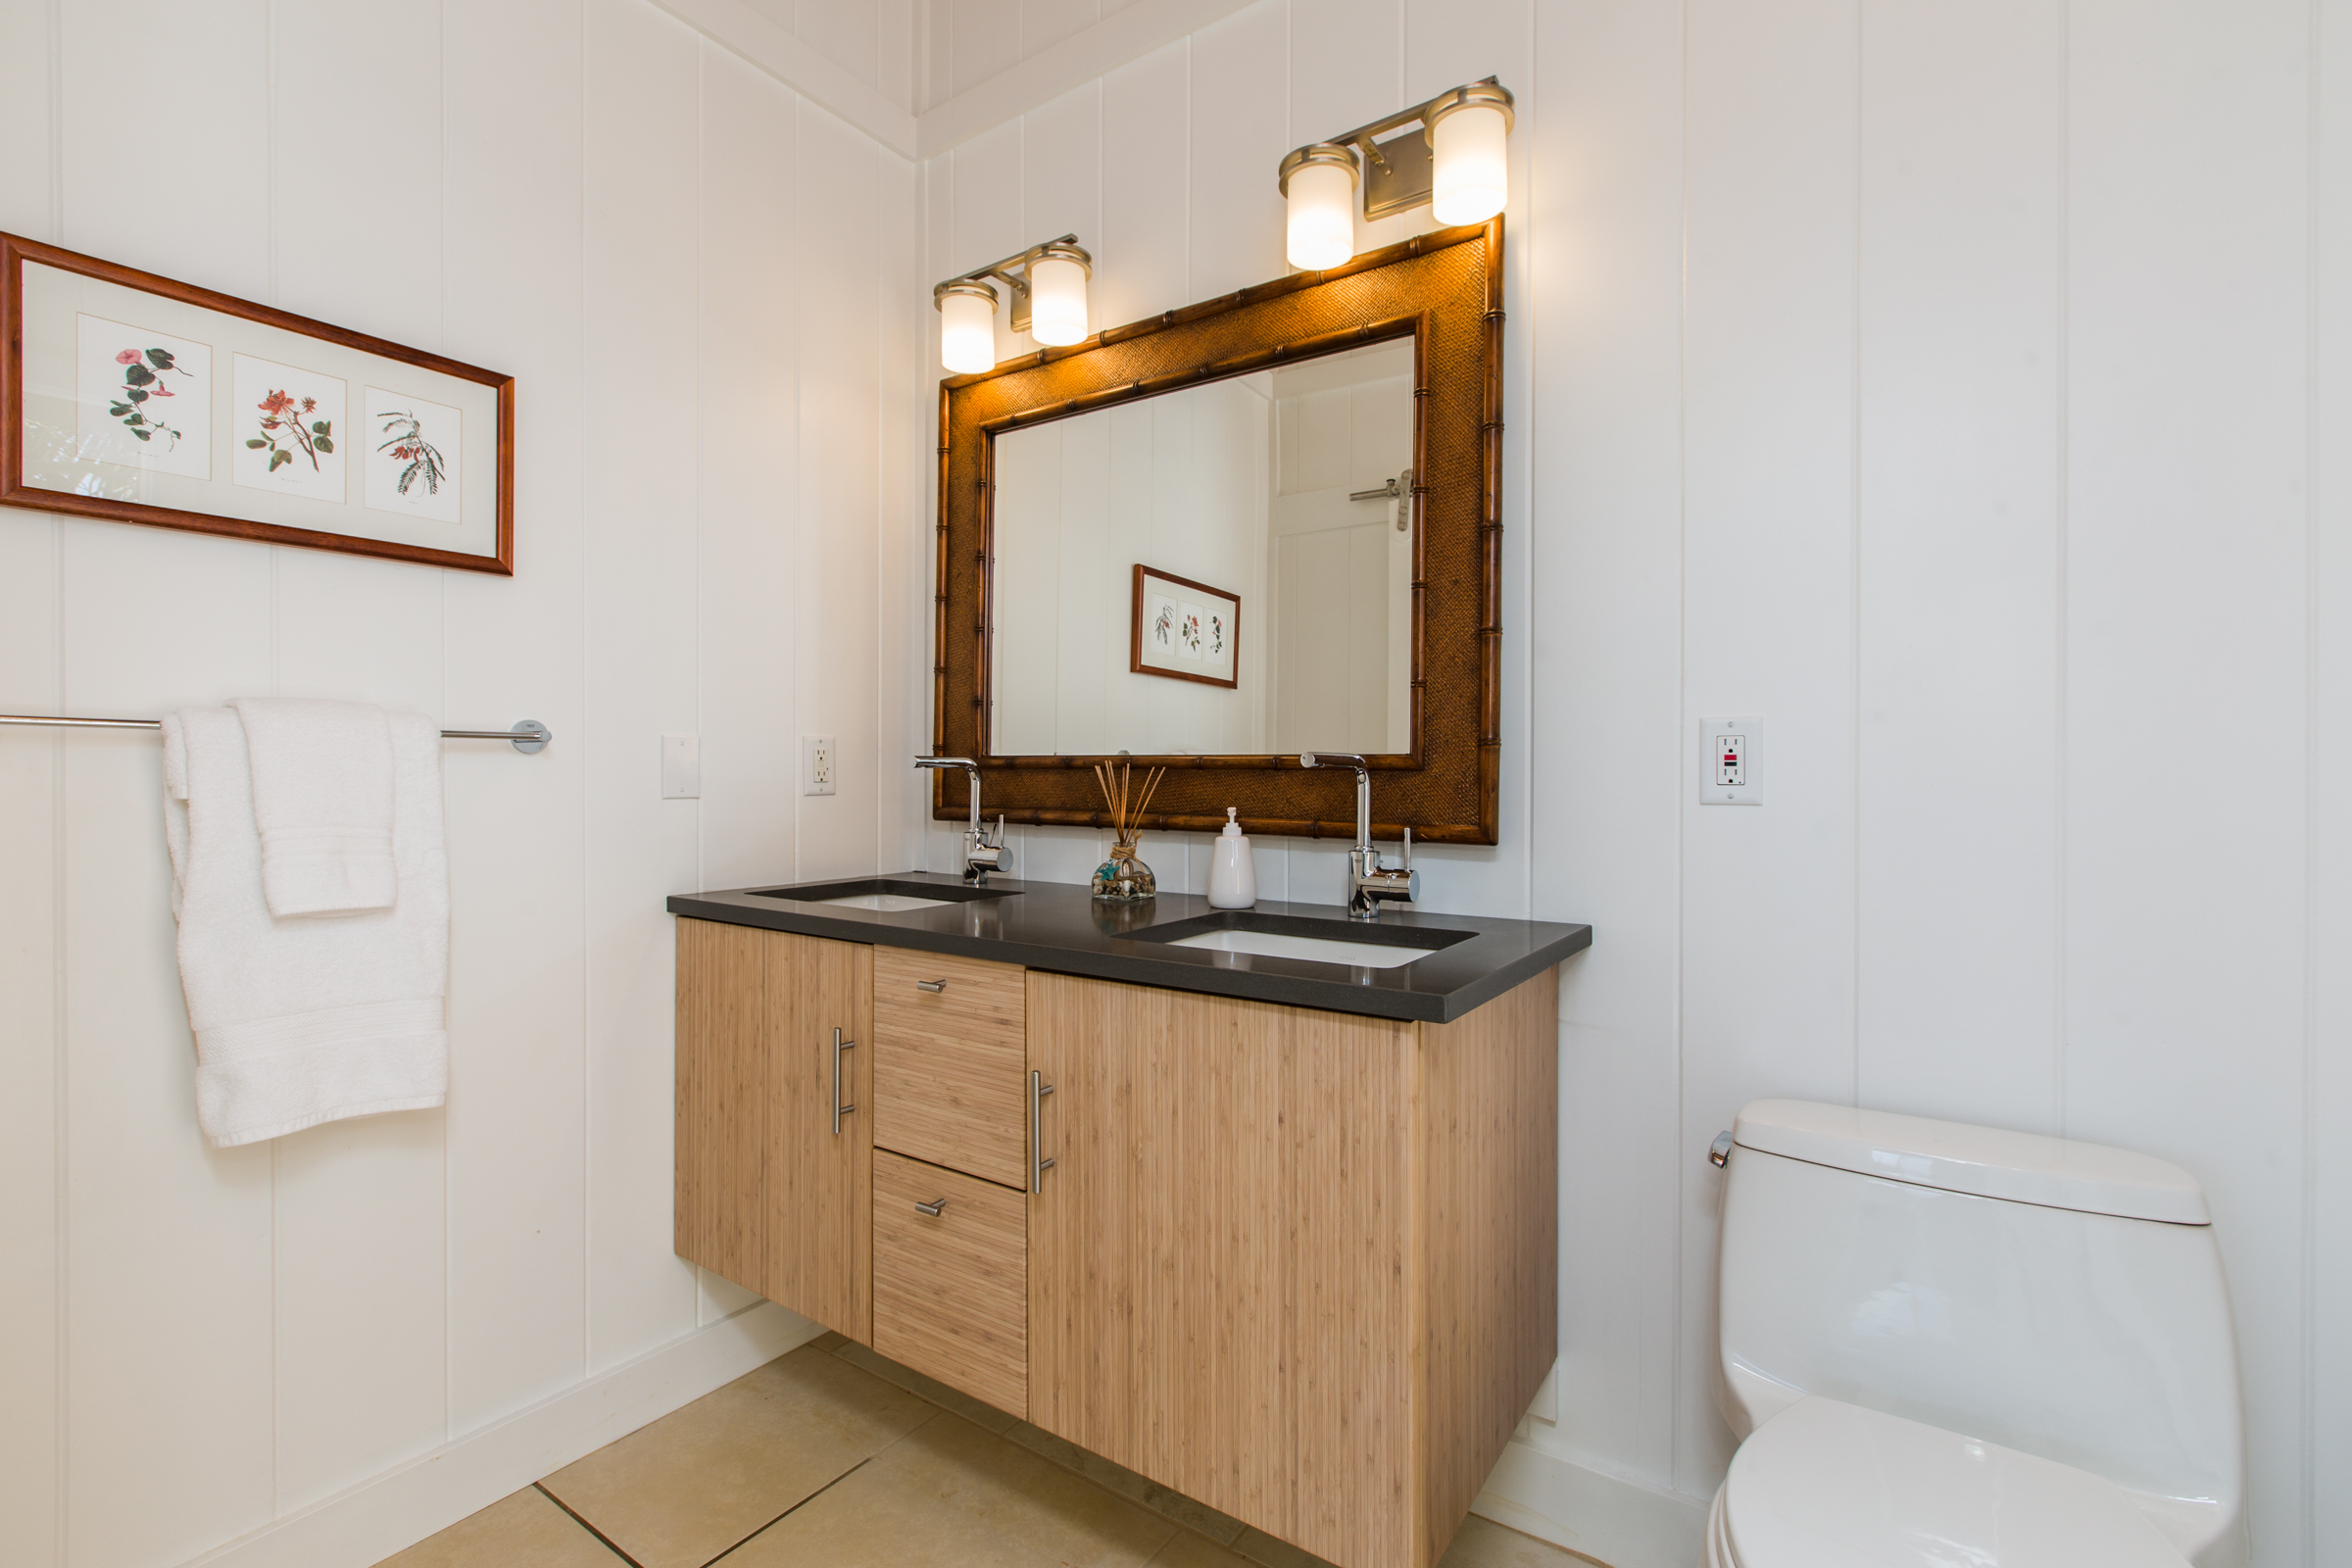 West oceanside master bedroom ensuite, indoor area, features double hanging solid bamboo and quartz vanity and one-piece toilet.  Step outside from here to shower and bathe...